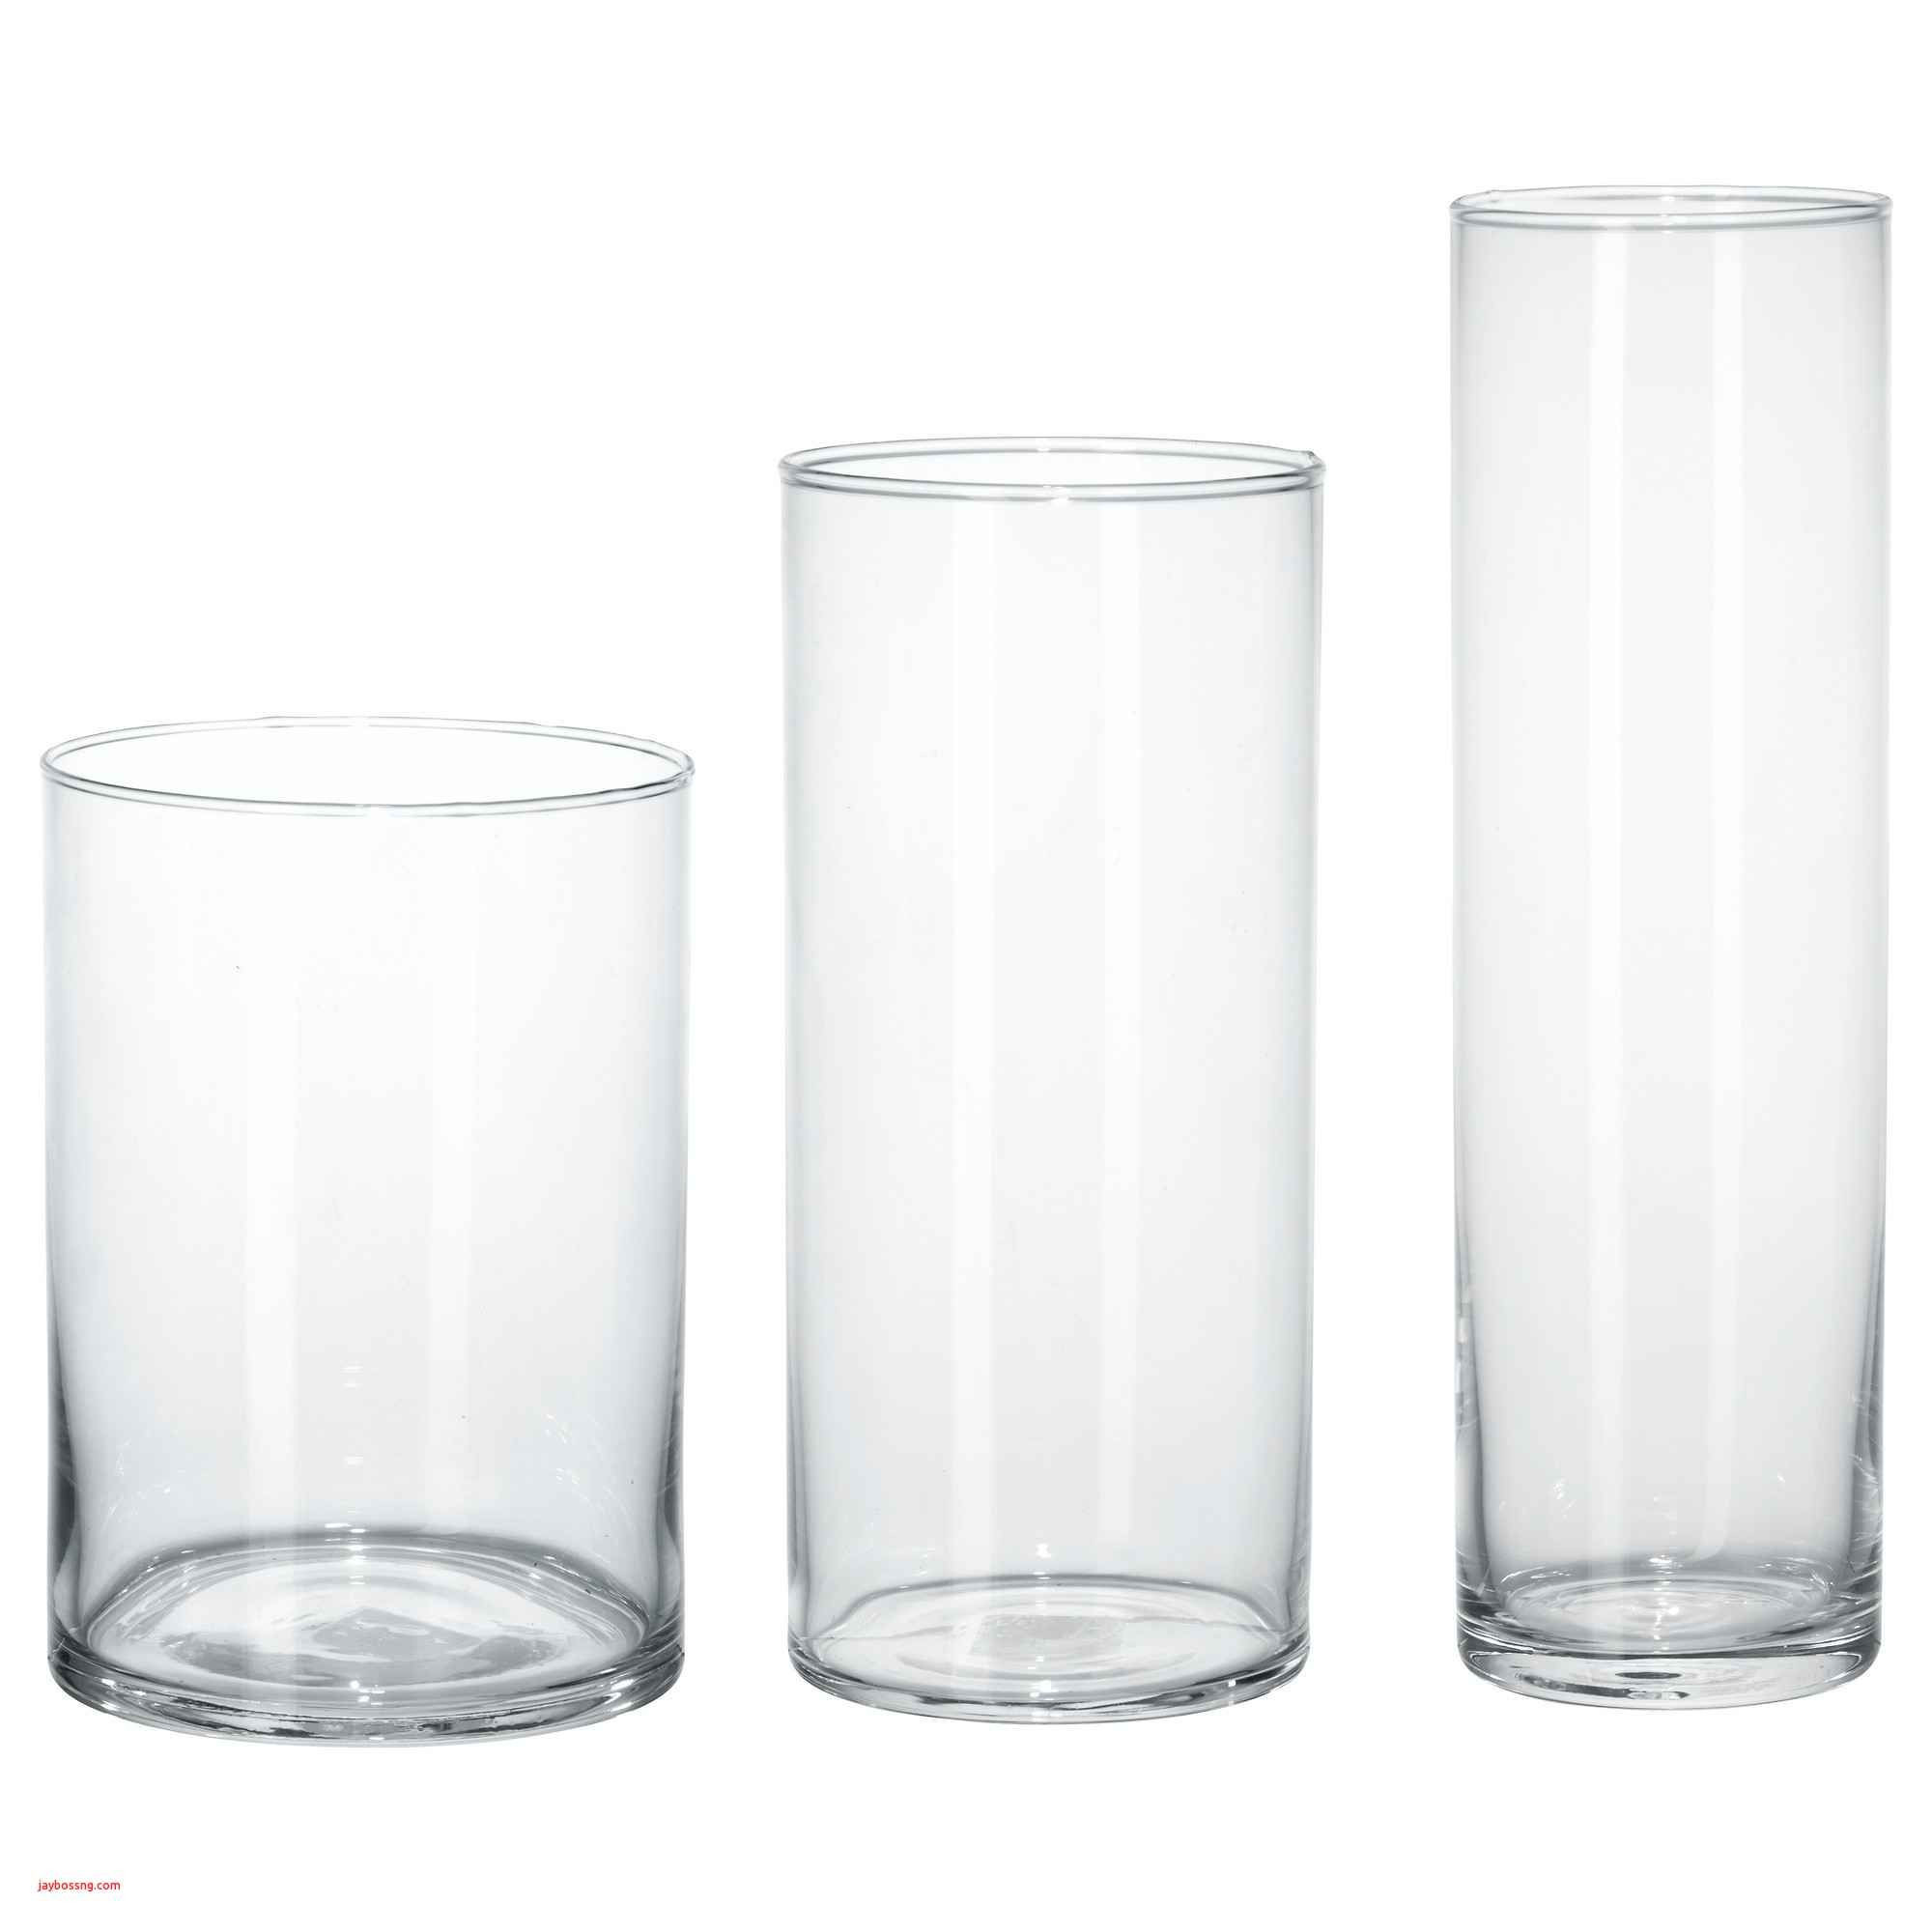 square glass flower vases of brown glass vase fresh ikea white table created pe s5h vases ikea in brown glass vase fresh ikea white table created pe s5h vases ikea vase i 0d bladet